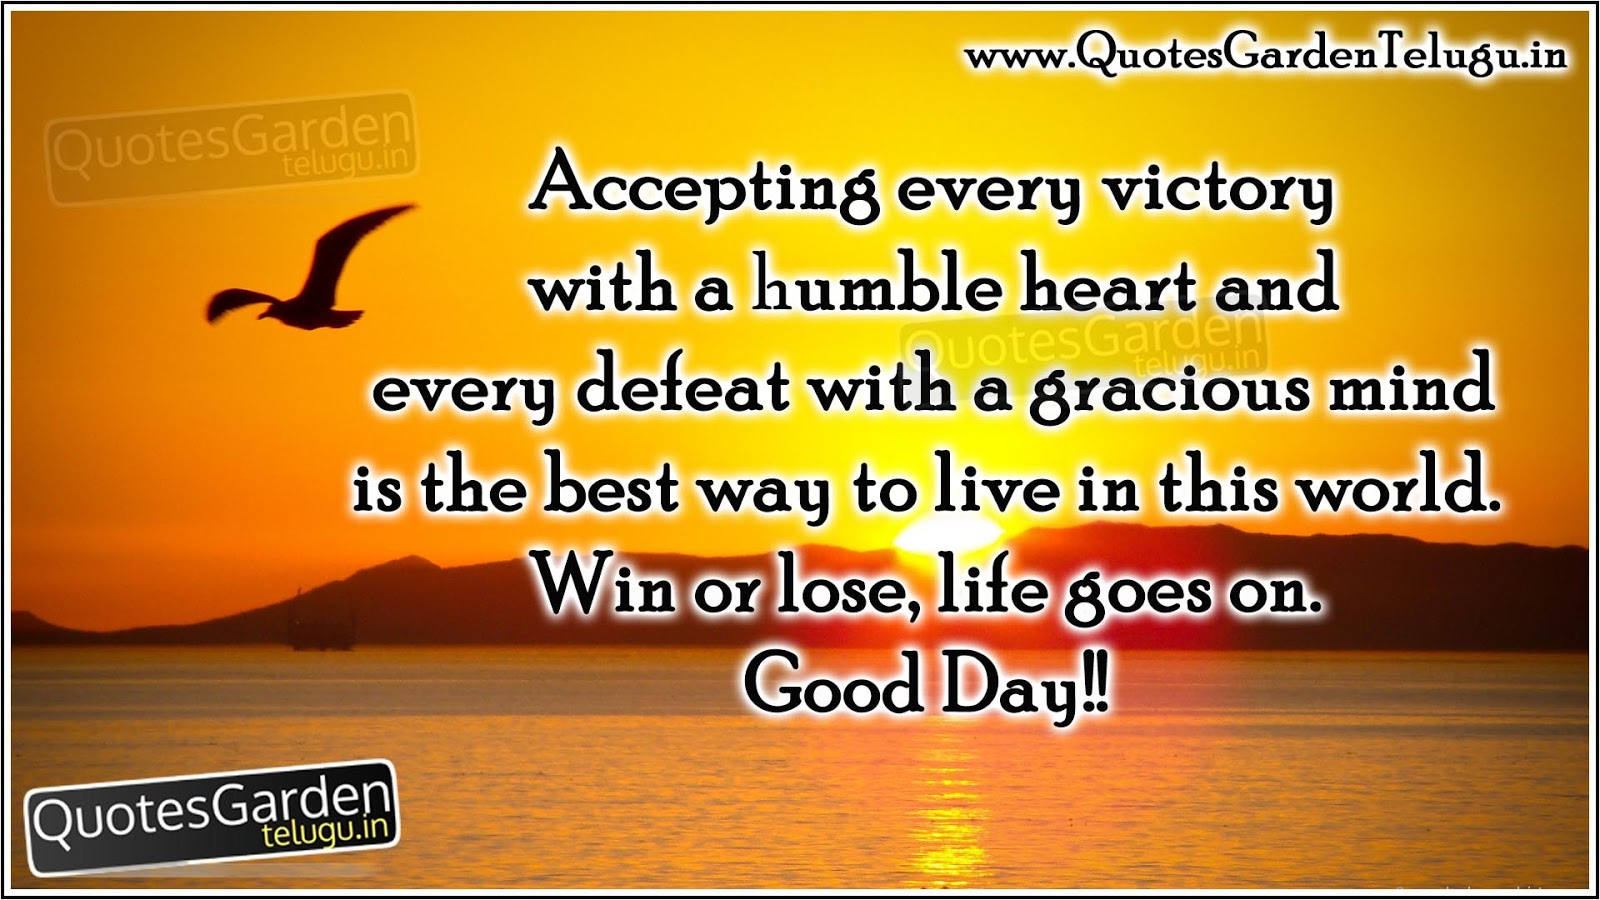 Good morning messags with good day greetings quotes garden telugu good morning messags with good day greetings m4hsunfo